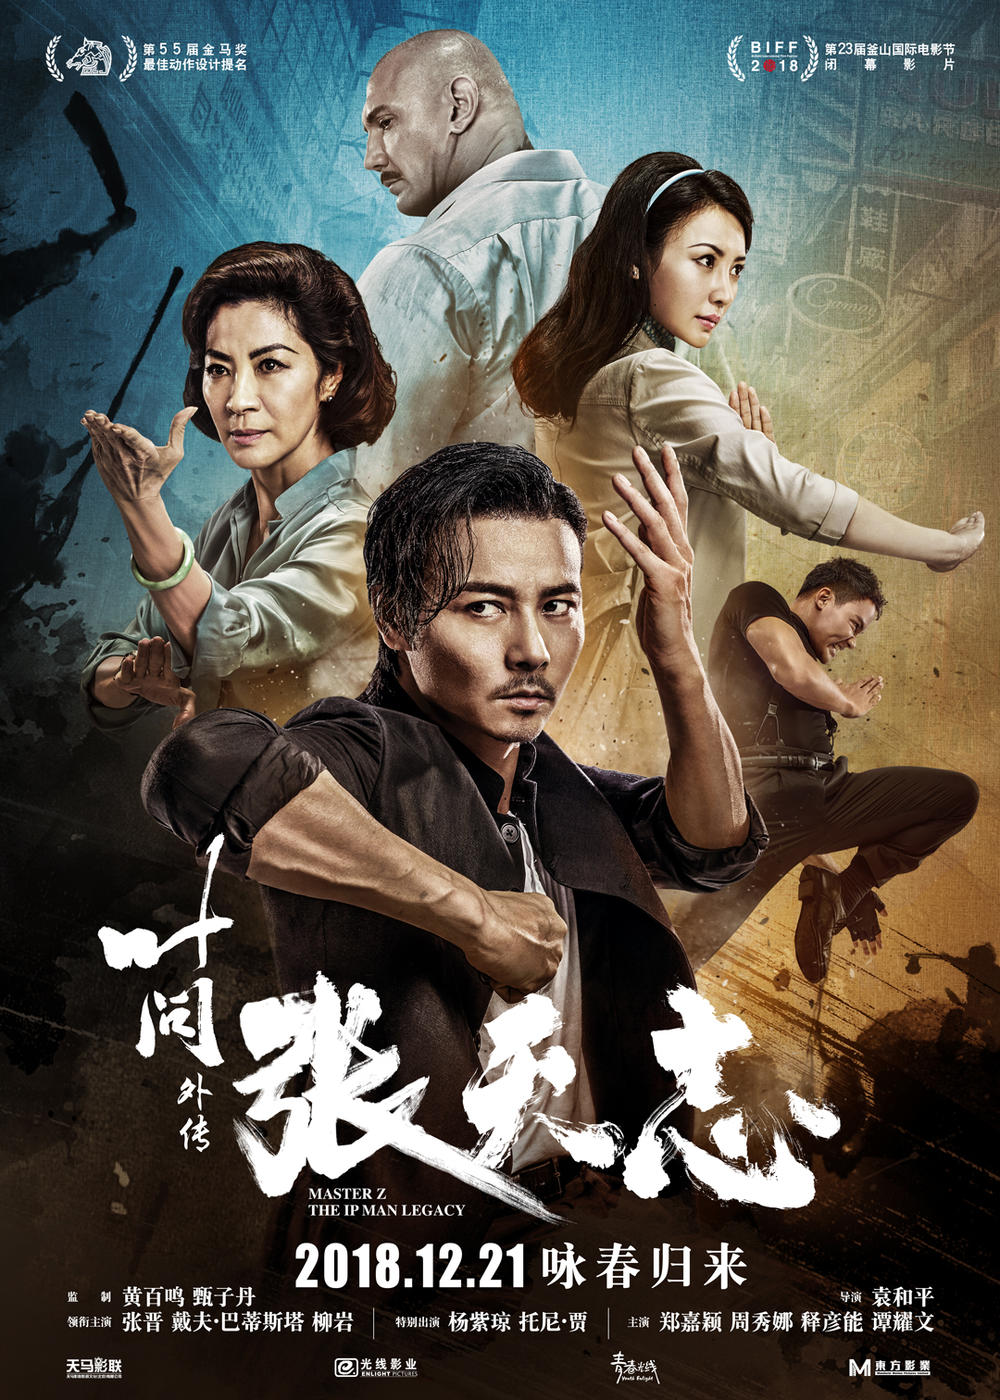 MASTER Z: THE IP MAN LEGACY (2018) review | Asian Film Strike